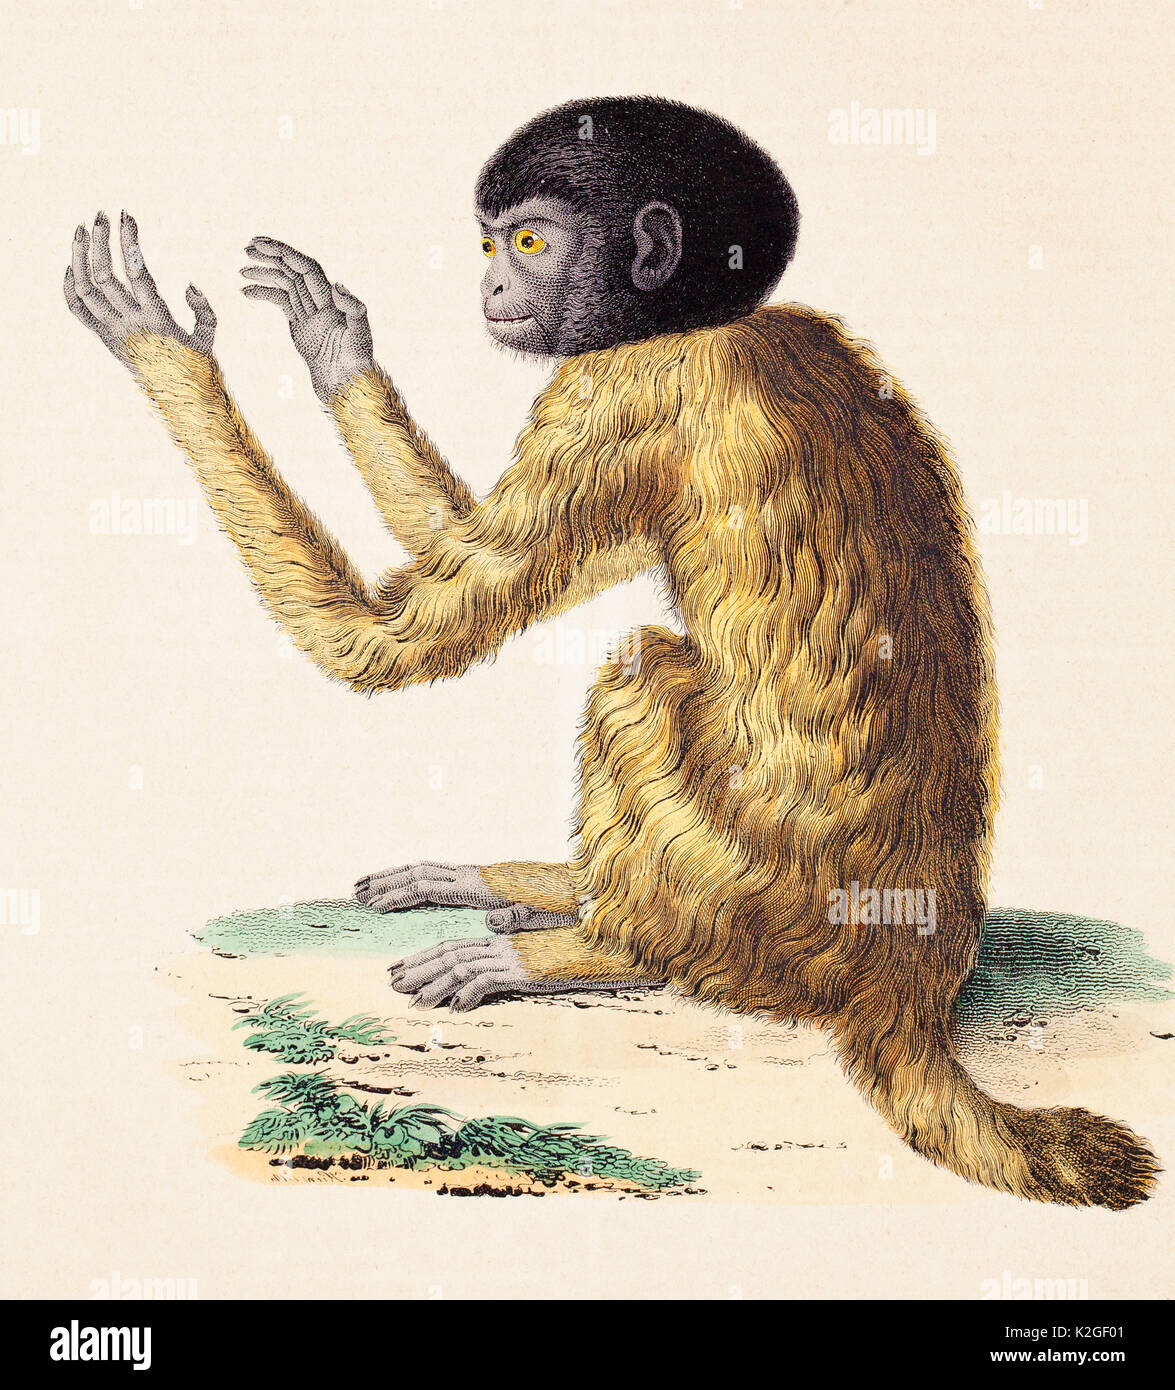 Illustration of a Black headed uakari (Cacajao melanocephalus) engraving from a sketch by Alexander von Humboldt and Aime Bonpland, included in their volume on comparative zoology and anatomy. The sketch was based on a pet monkey they kept on their Orinoco journey. - Stock Image